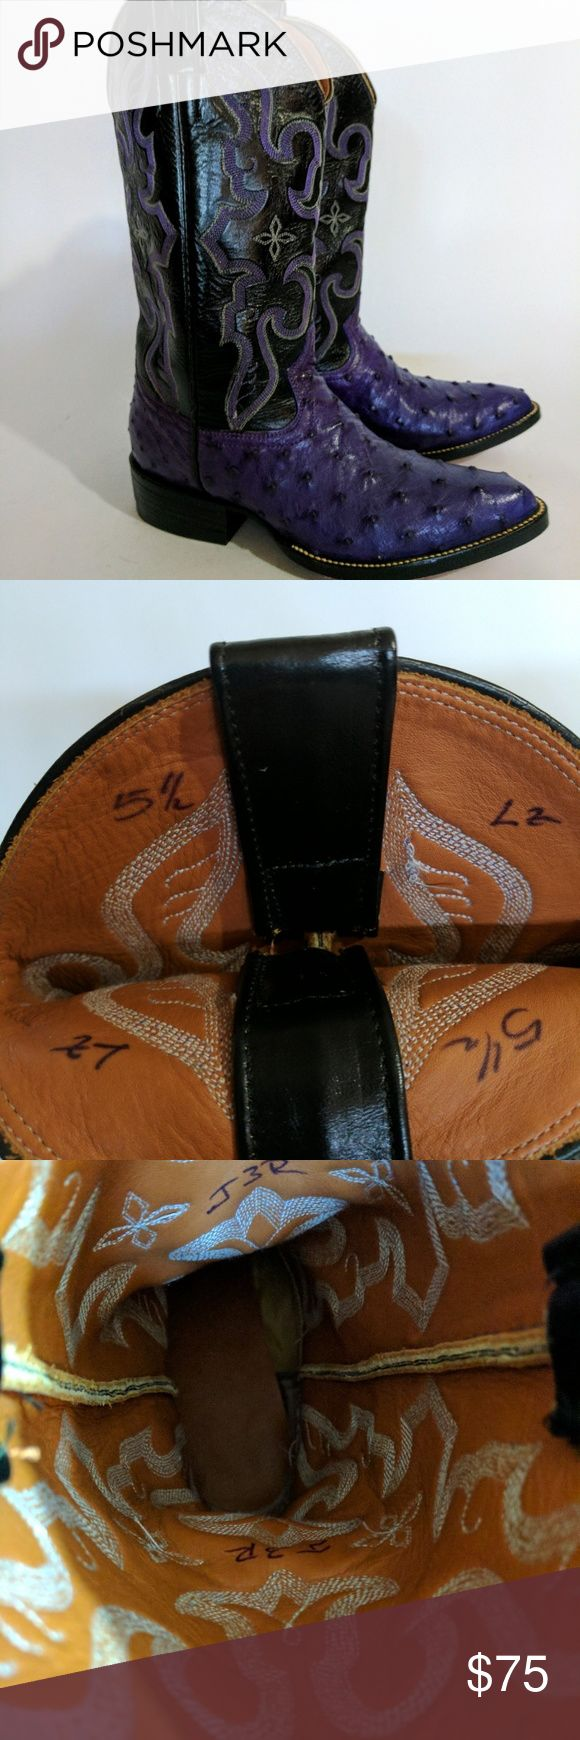 """Purple Ostrich Cowboy Boots sz 5.5 Black Purple Ostrich Cowgirl Boots Pointy toe size 5.5 Western Cowboy  These are sz 5.5  They do not have any markings on the inside except LZ 5 1/3 and J3R.  They have been professionally resoled and not worn after that.  They are real leather and are very heavy. The stitching on style are very similar to Tony Lama with no indication they are.  Width: (outer sole) 4"""" Heel to Shaft top: 13"""" Shaft: 13"""" Mid toe to heel: 8.25 (this is a general…"""